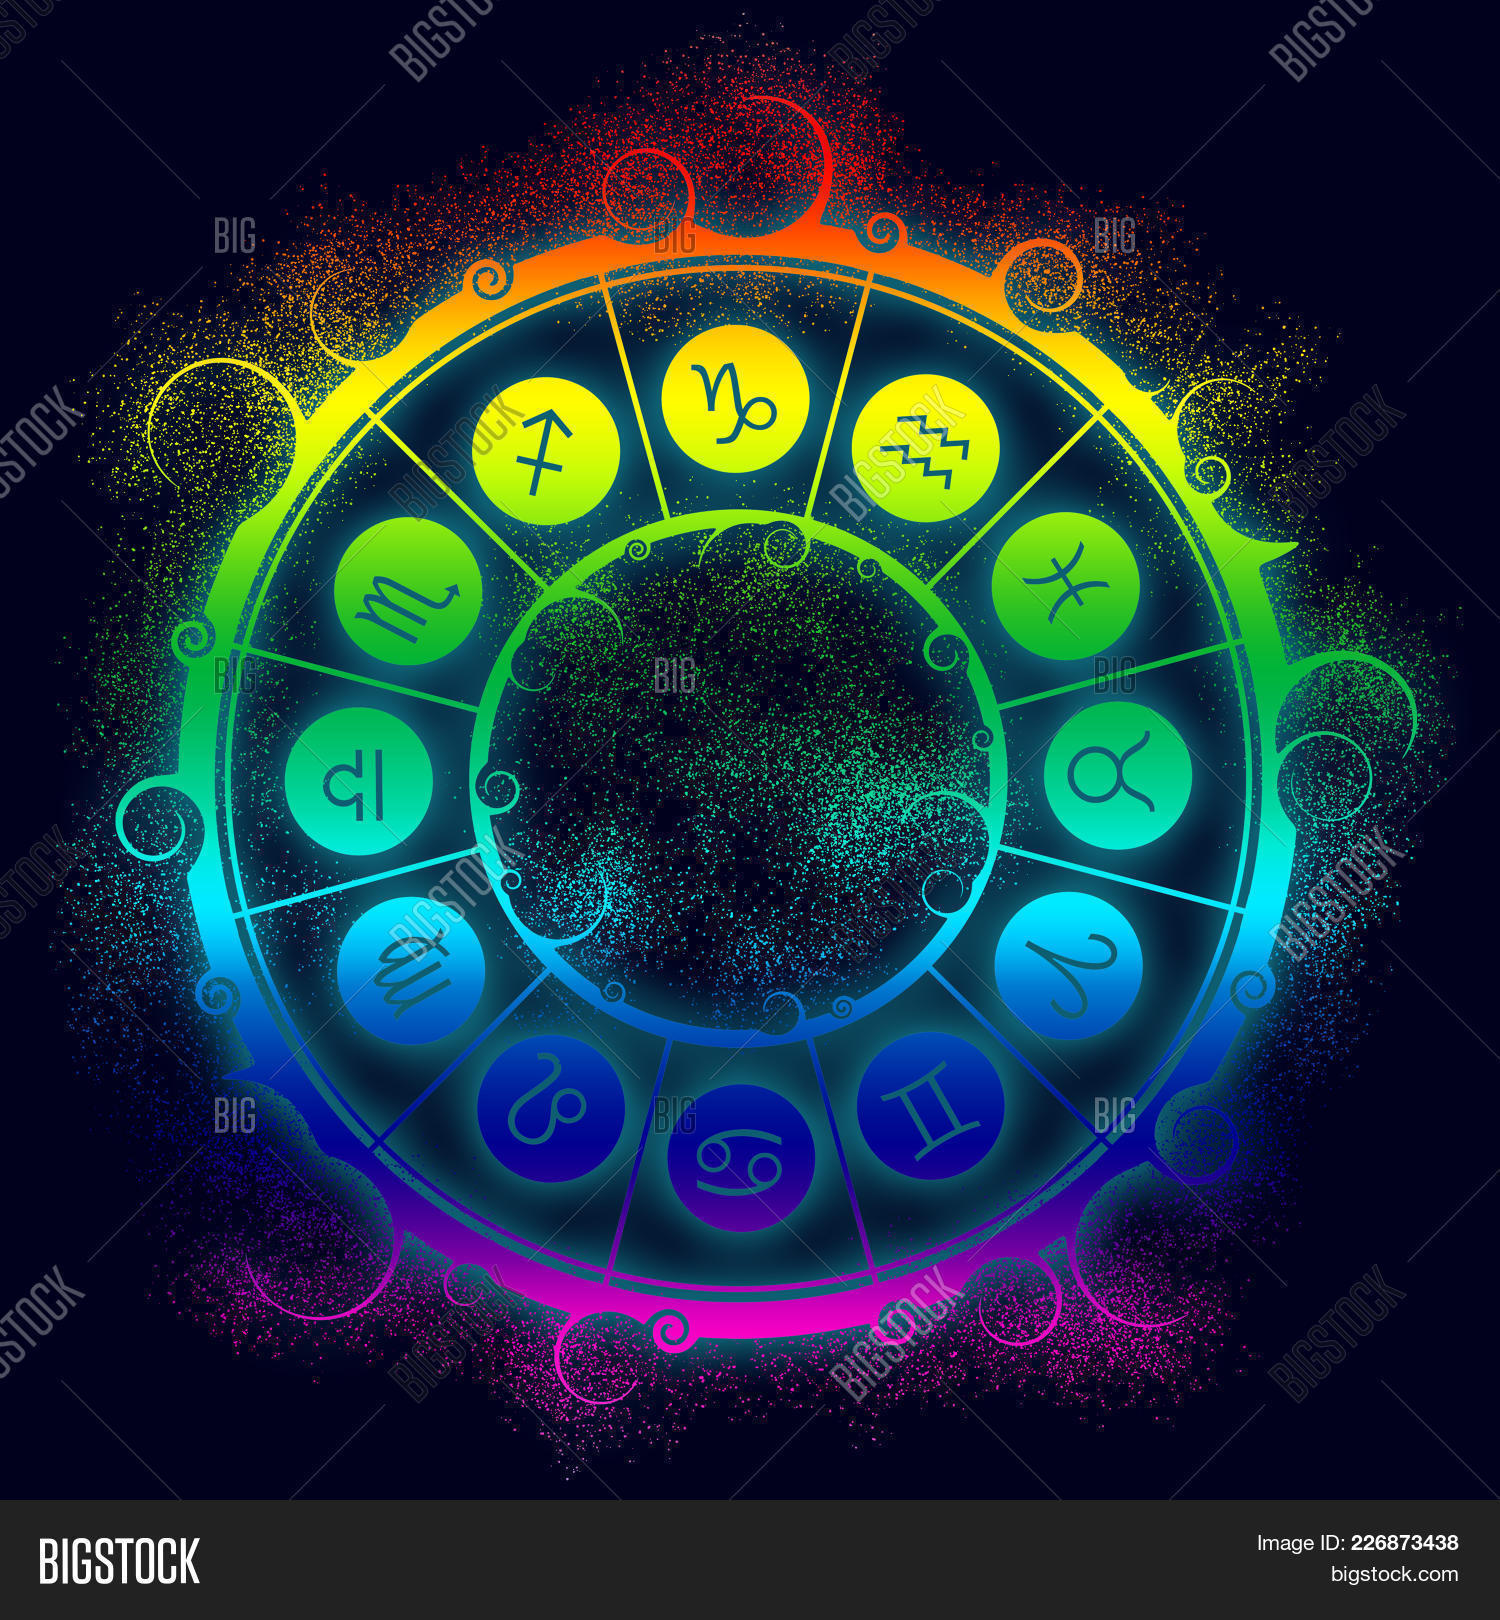 Astrological Symbols Image & Photo (Free Trial) | Bigstock